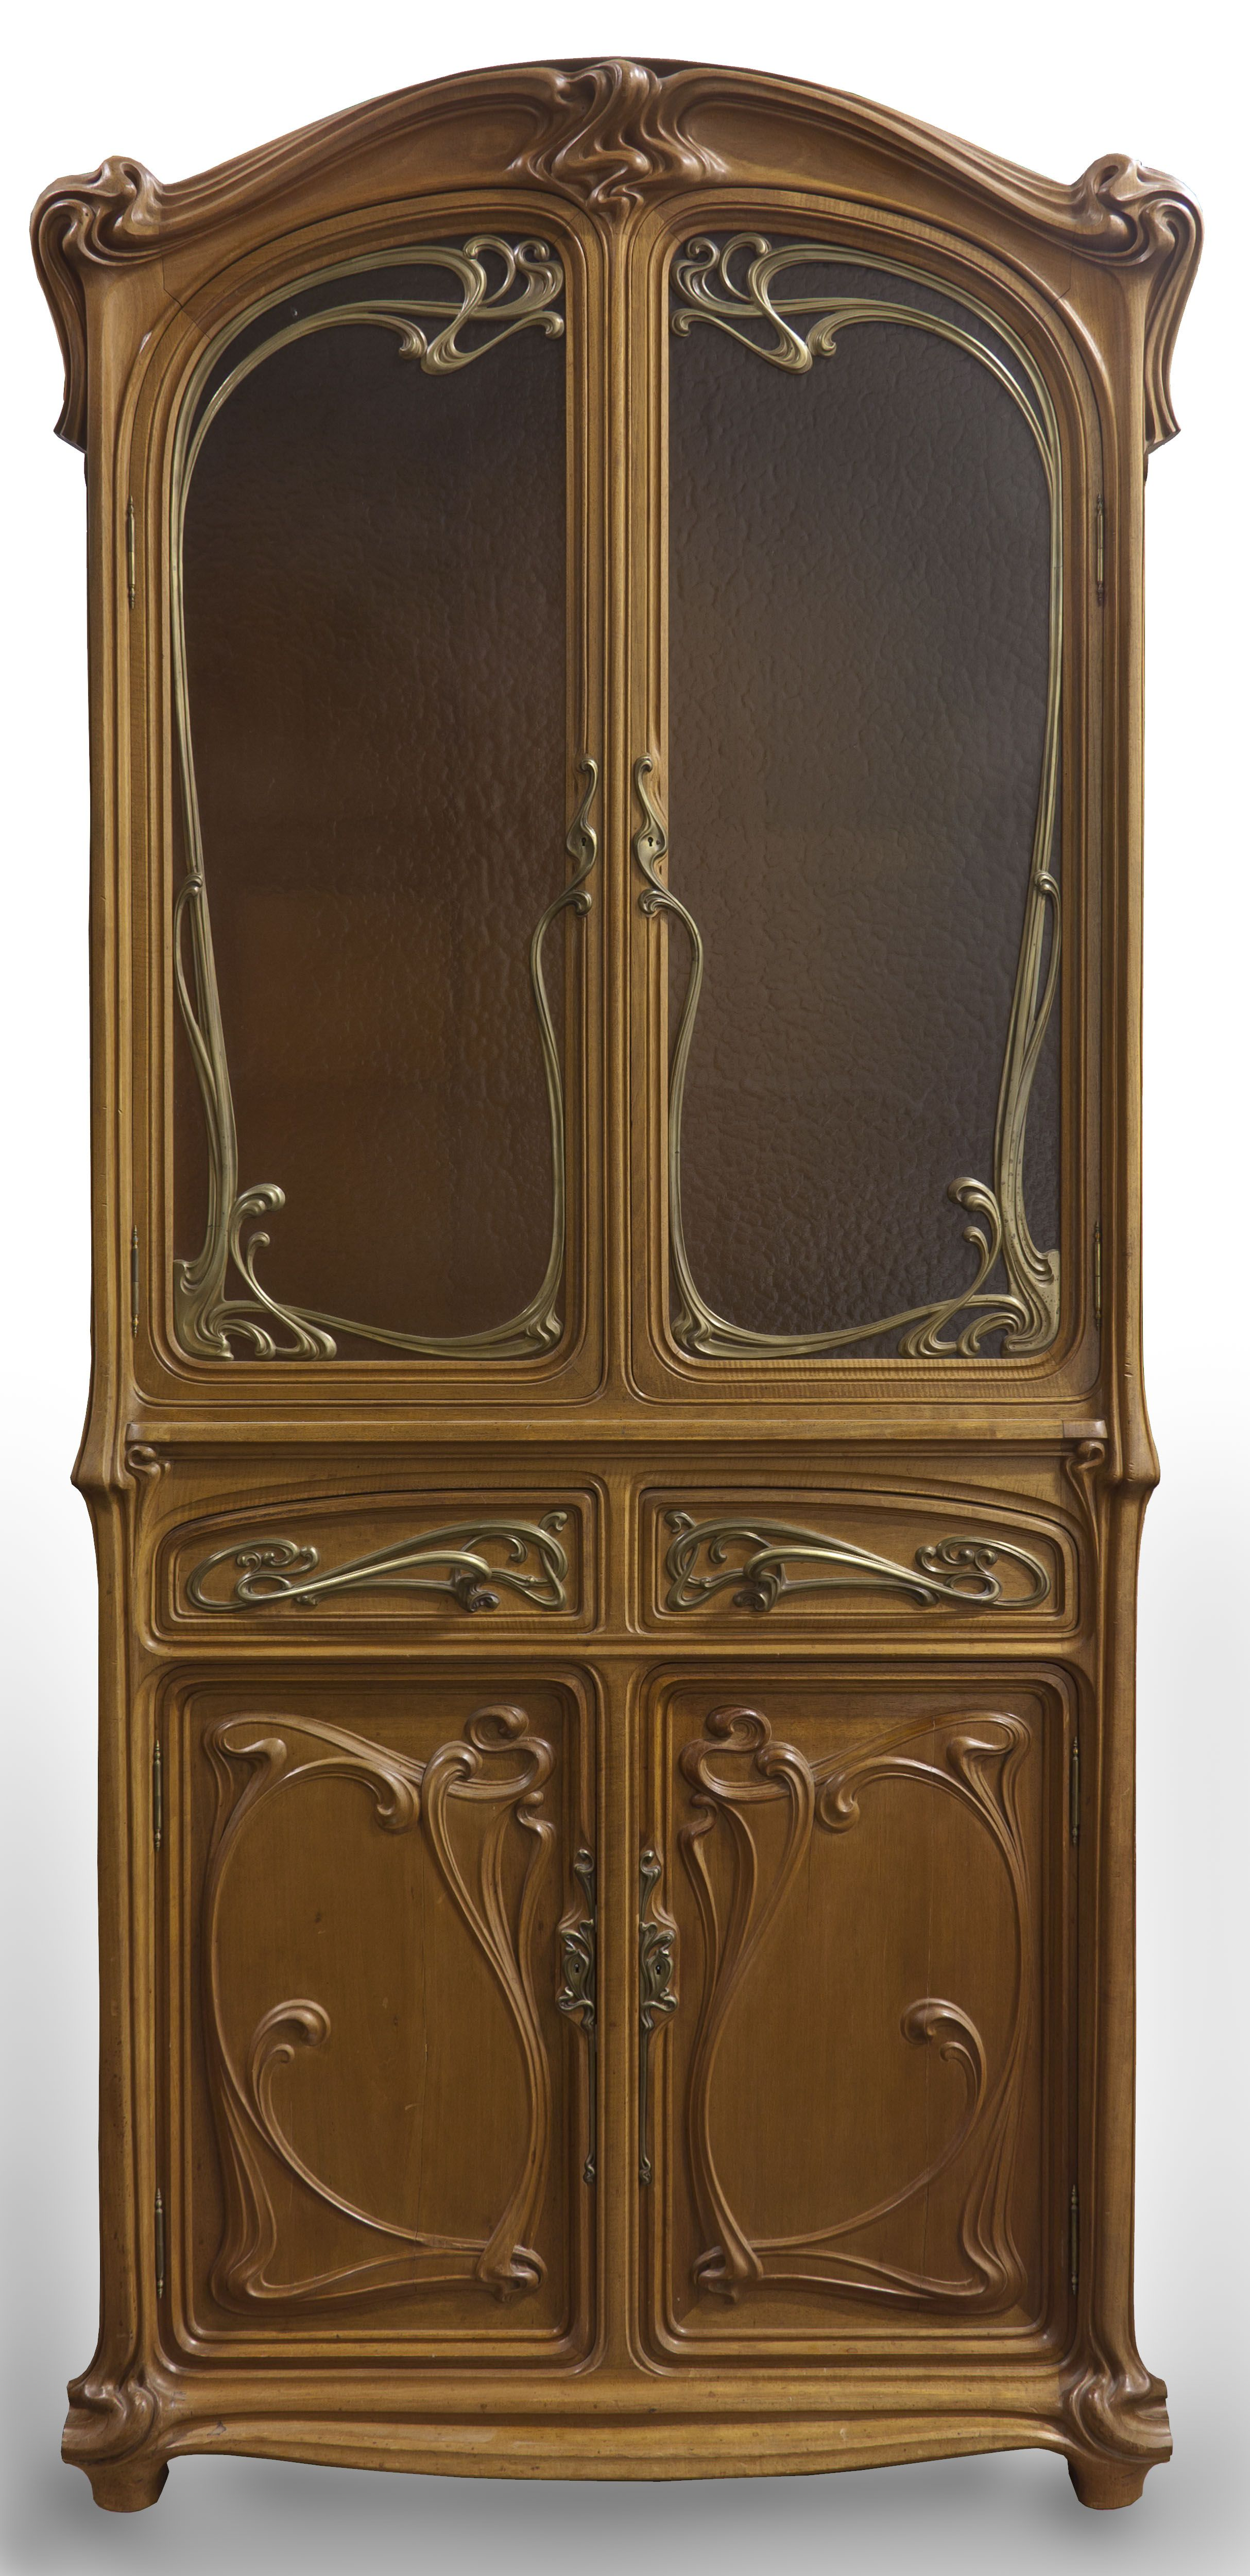 eug ne gaillard 1862 1933 cabinet mahogany and glass with bronze hardware circa 1900. Black Bedroom Furniture Sets. Home Design Ideas